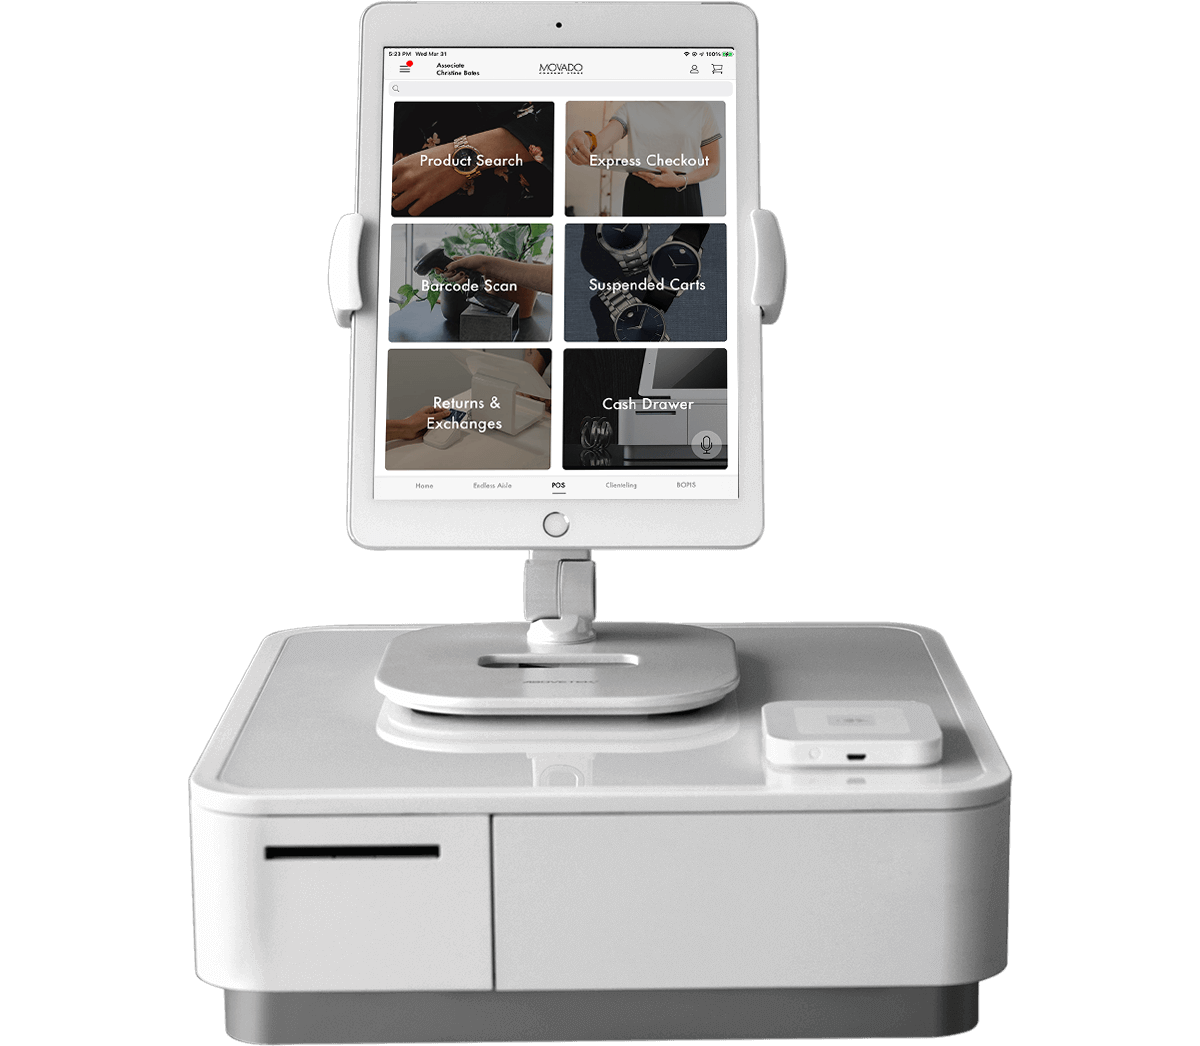 POS - Point of sale software for Furniture Brands and Retailer by PredictSpring